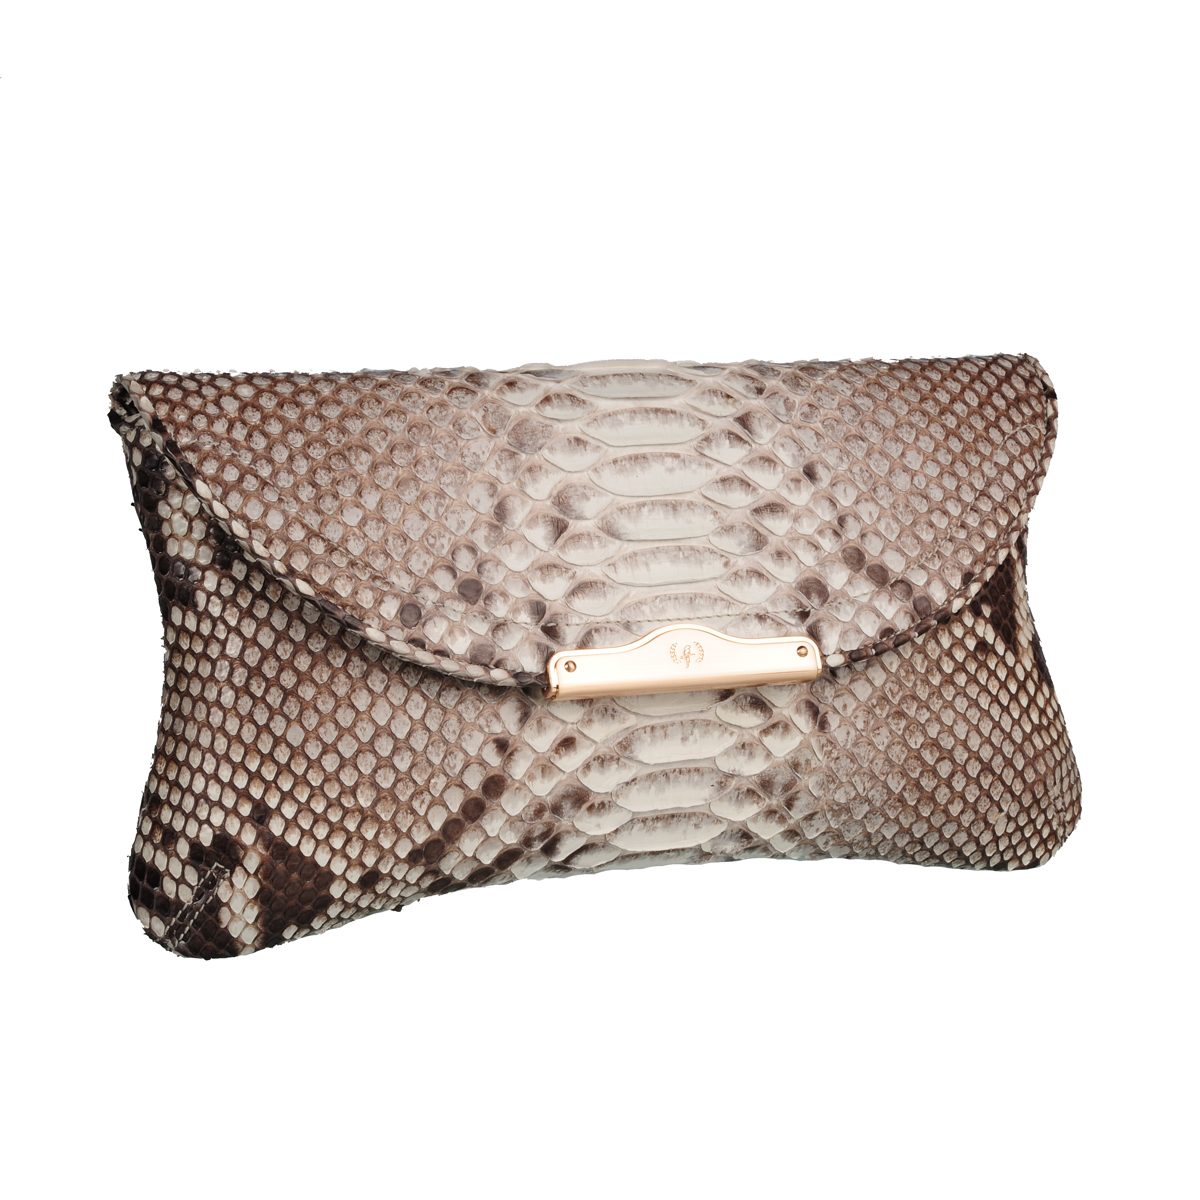 [CLUTCH] CHLOE (REAL PYTHON / TWO TONE NATURAL)